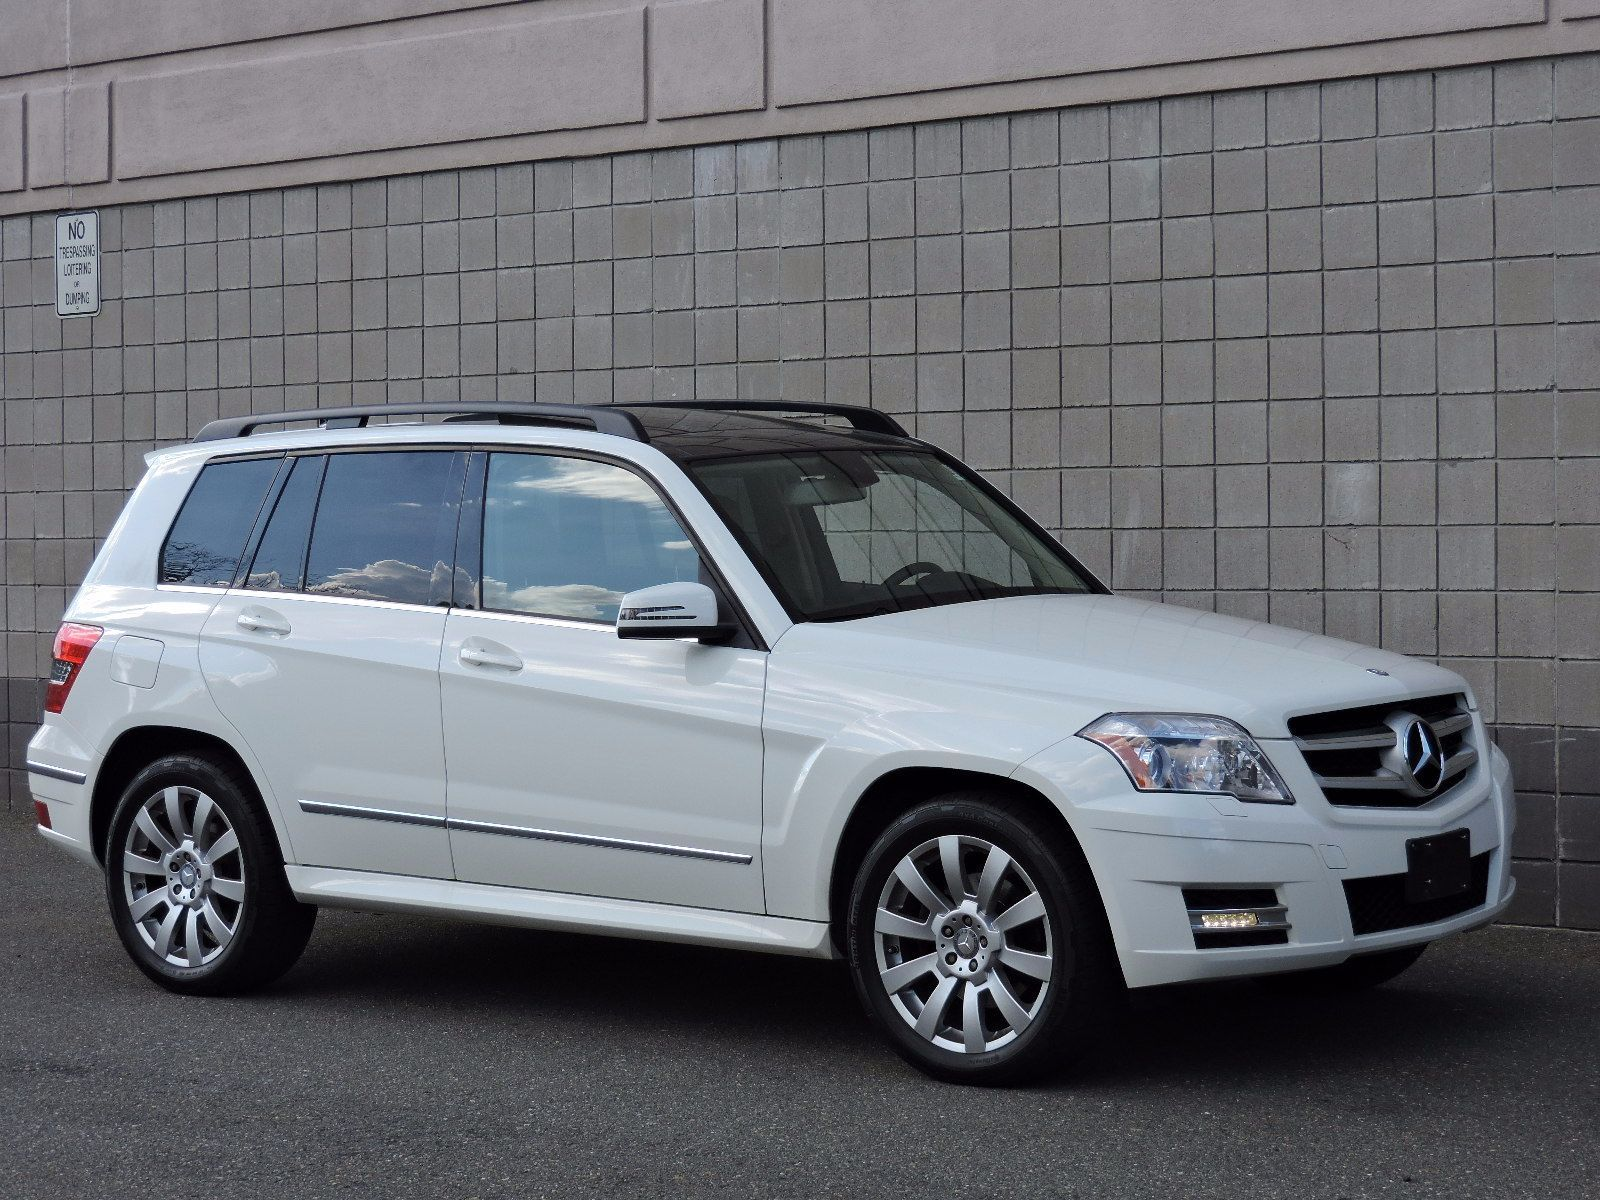 Used 2011 mercedes benz glk class at saugus auto mall for Mercedes benz glk class